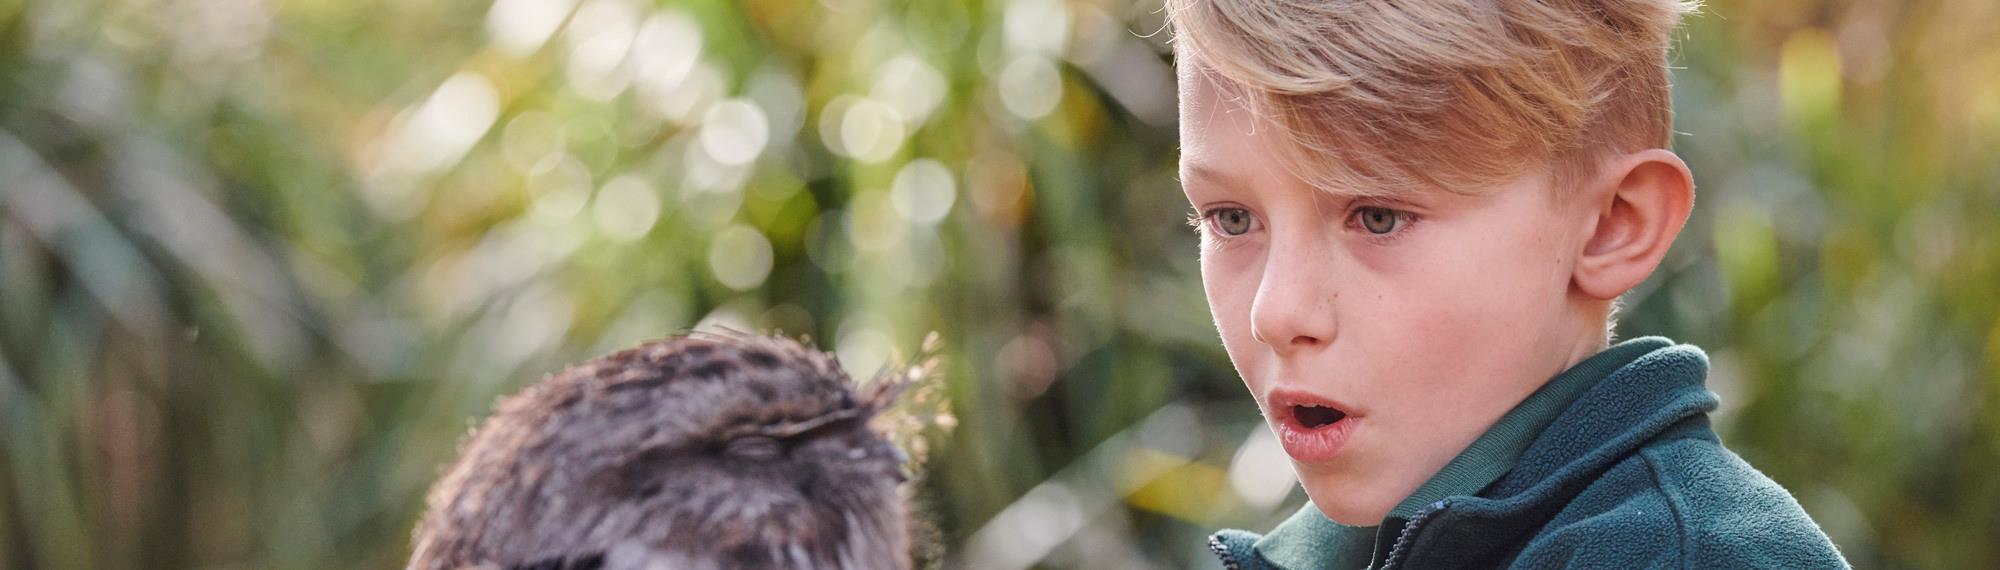 Young male student looking closely at a Tawny Frogmouth. His mouth is open and he is looking down at the head of the bird.